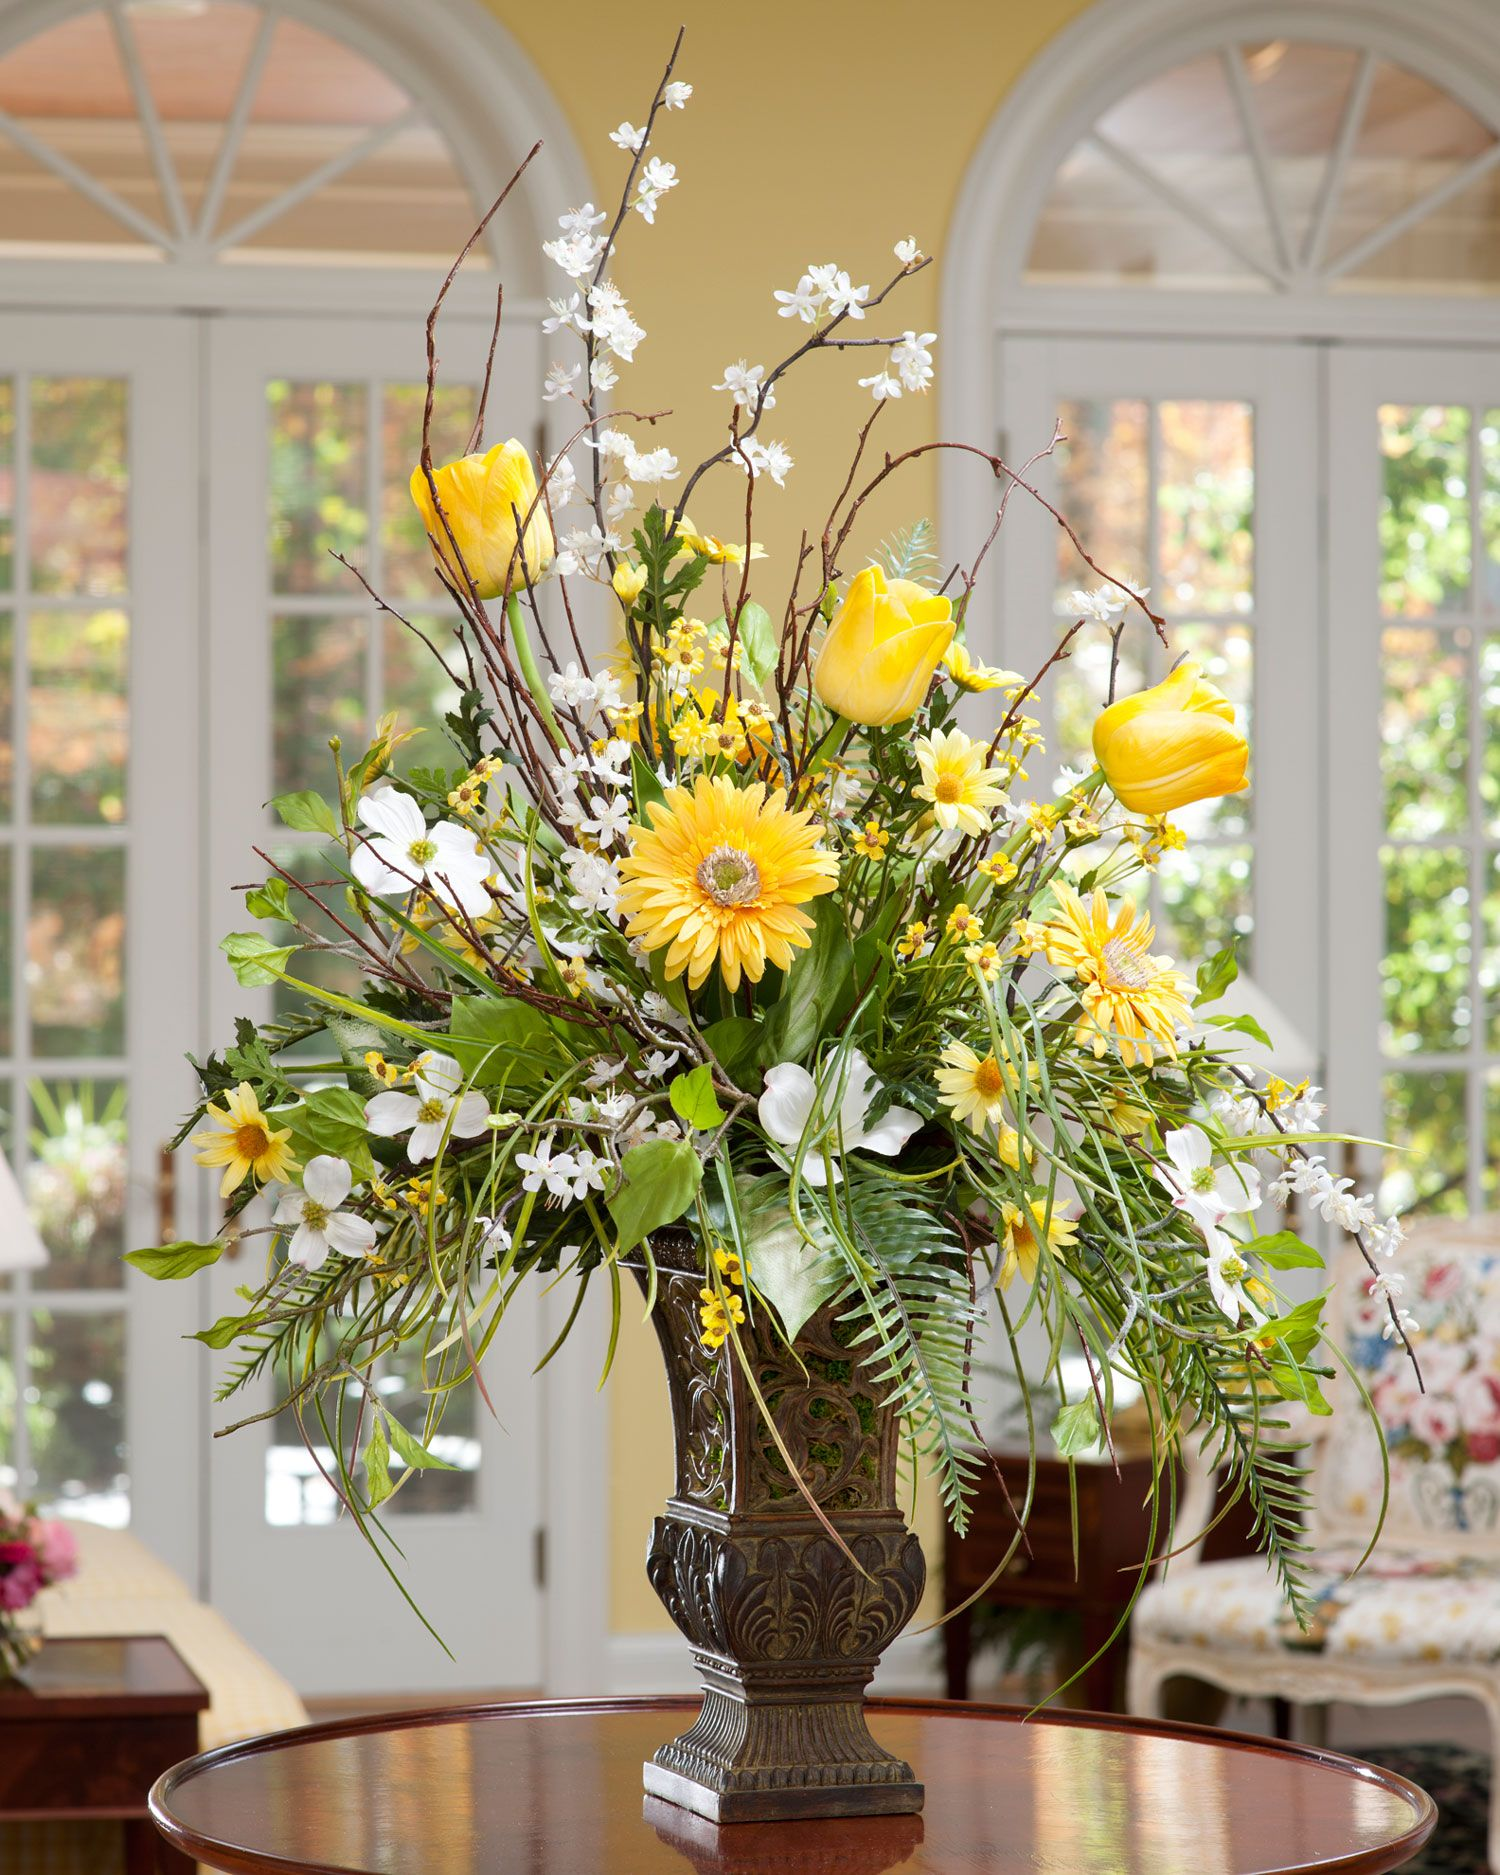 Flower arranging in a 12 tall vase home shop at home silk florals dramatic elegance silk arrangements cherry blossom tulip daisy flowers new izmirmasajfo Choice Image